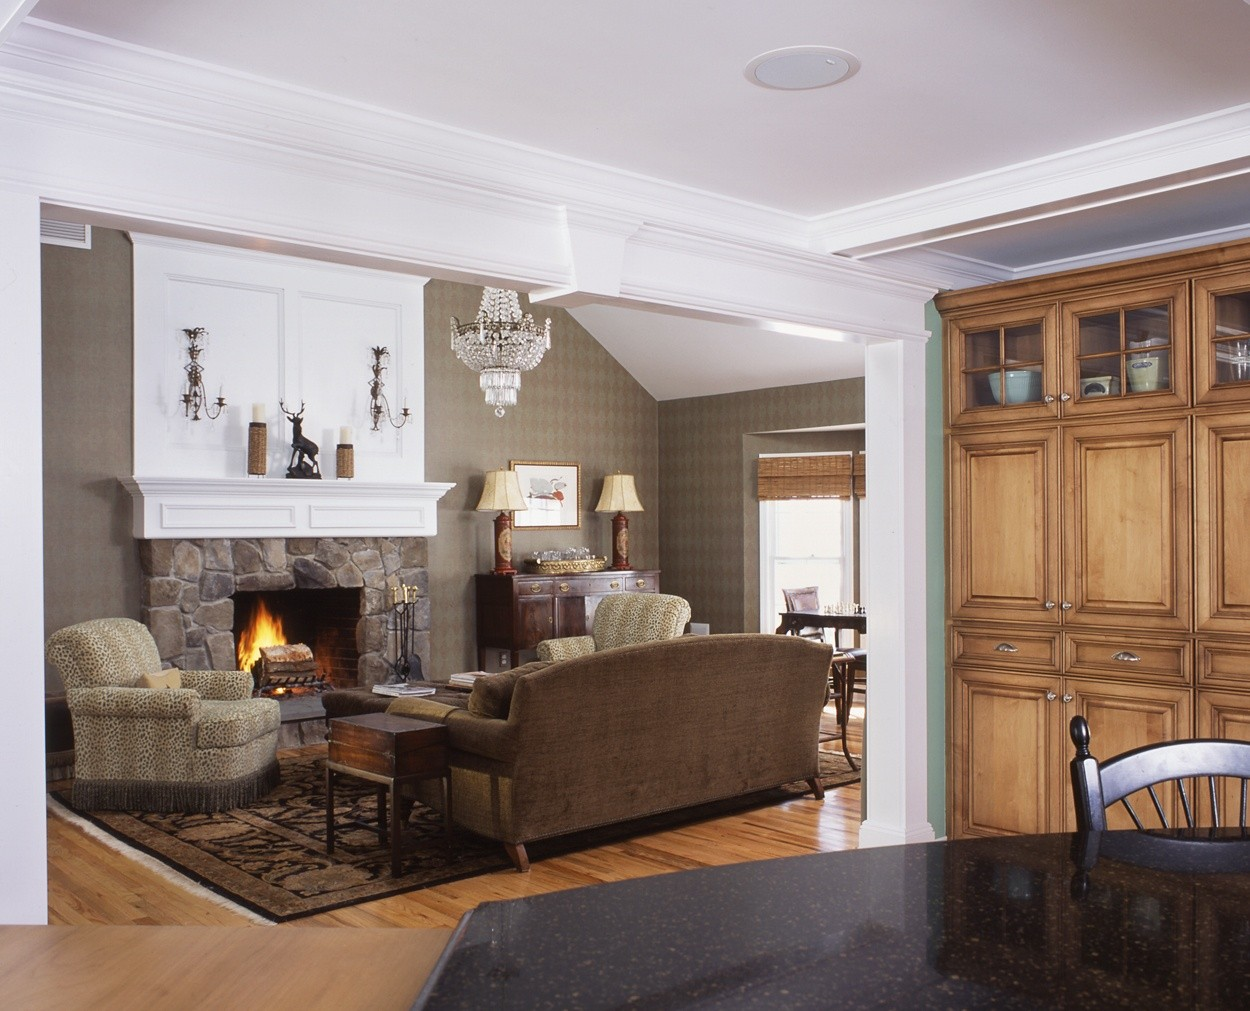 Stone fireplace surround gives this livingroom a warm feel.